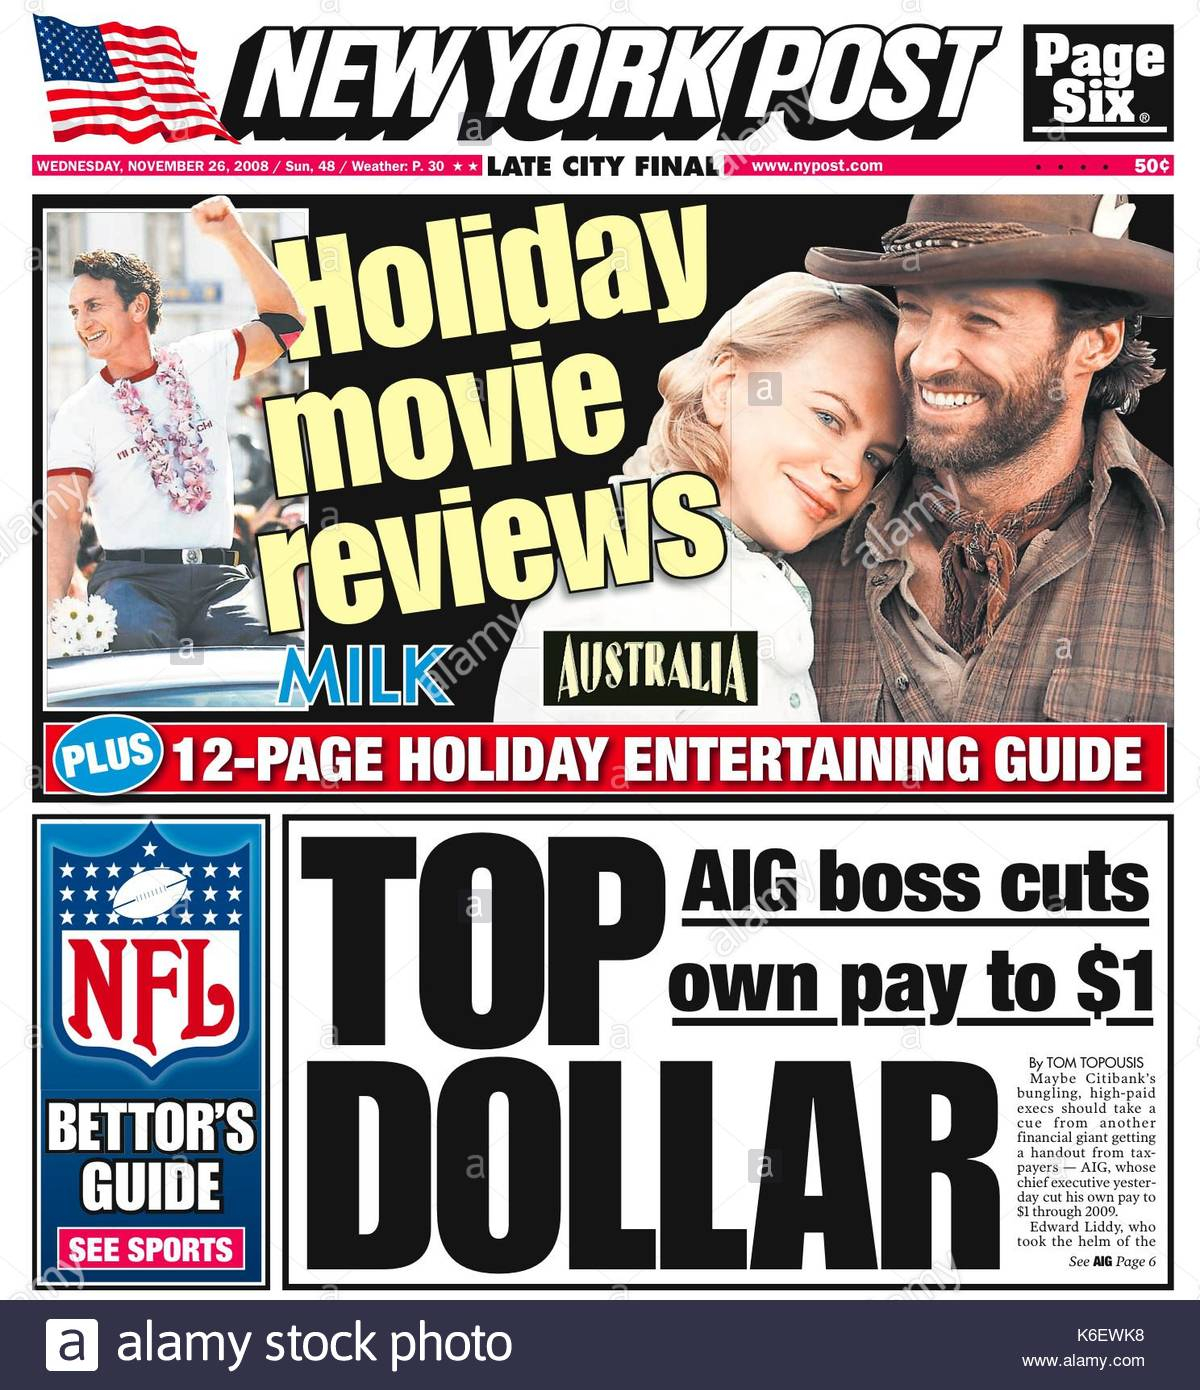 New York Post. The New York Post: Wednesday 26th November 2008. Cover stories of AIG insurance execs taking massive - Stock Image